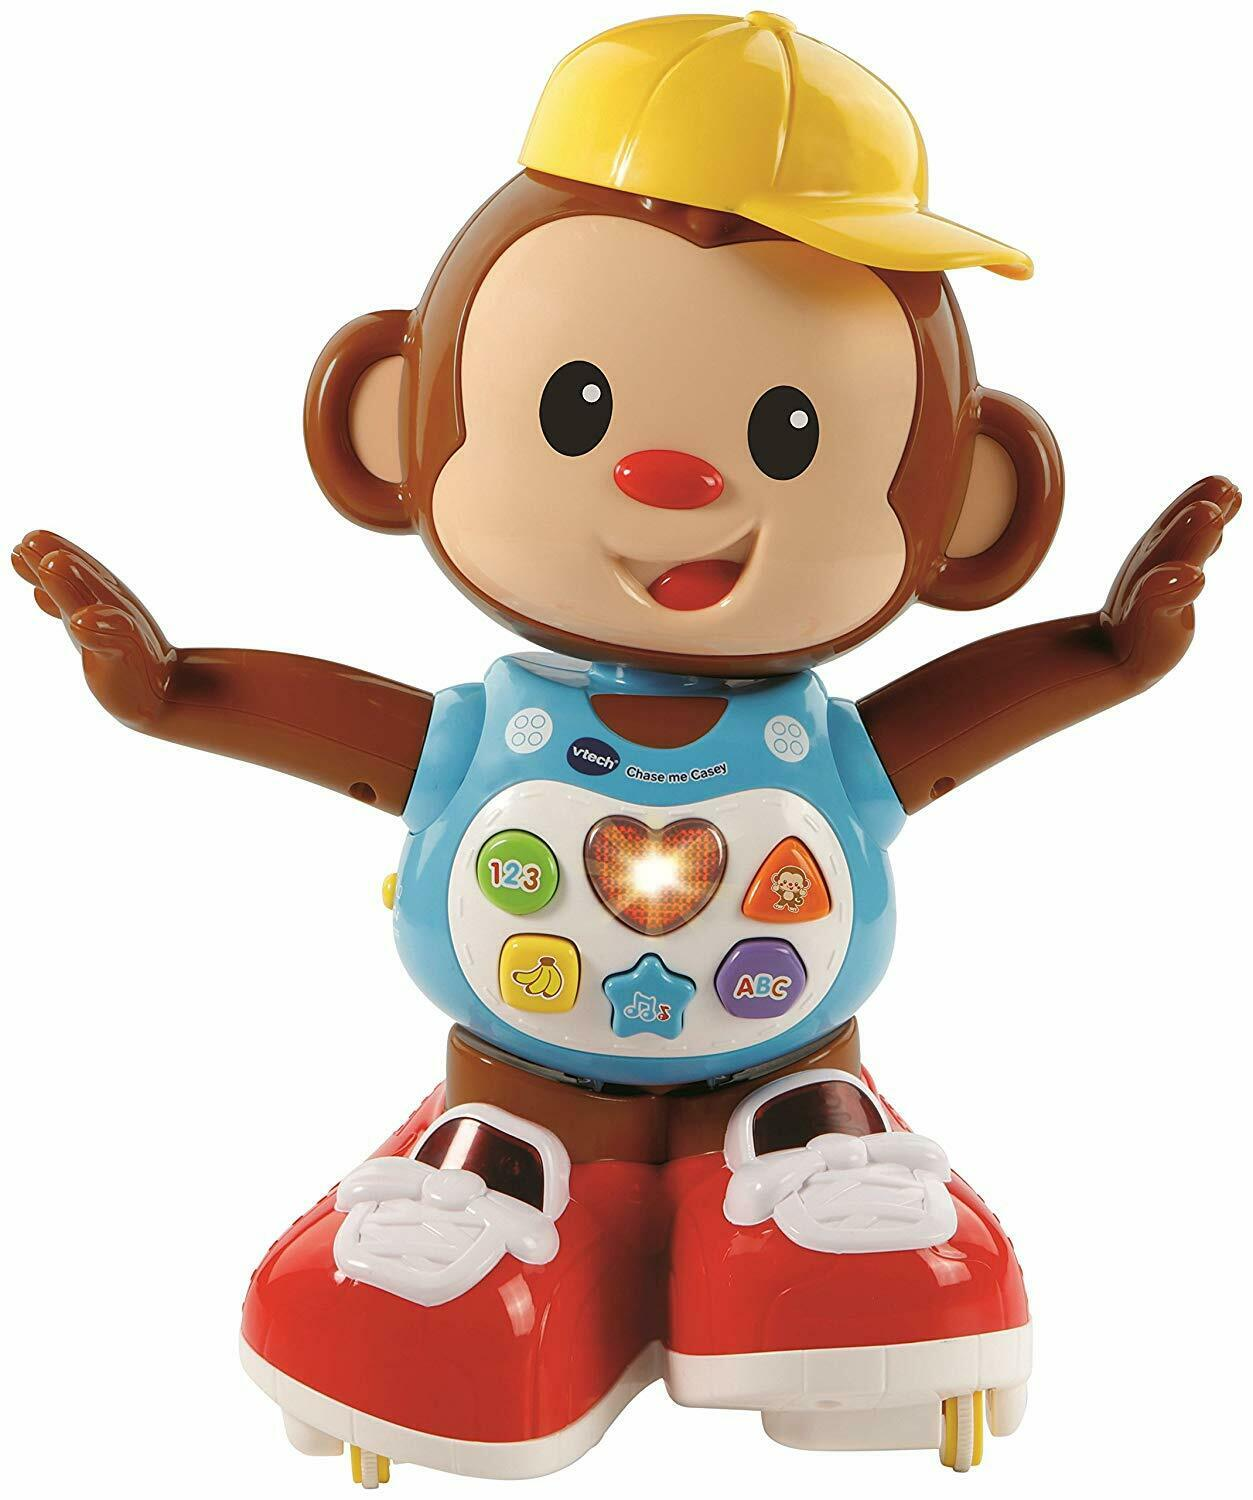 VTech Chase Me Casey Monkey Interactive Educational Dancing Skating Fun Baby Toy